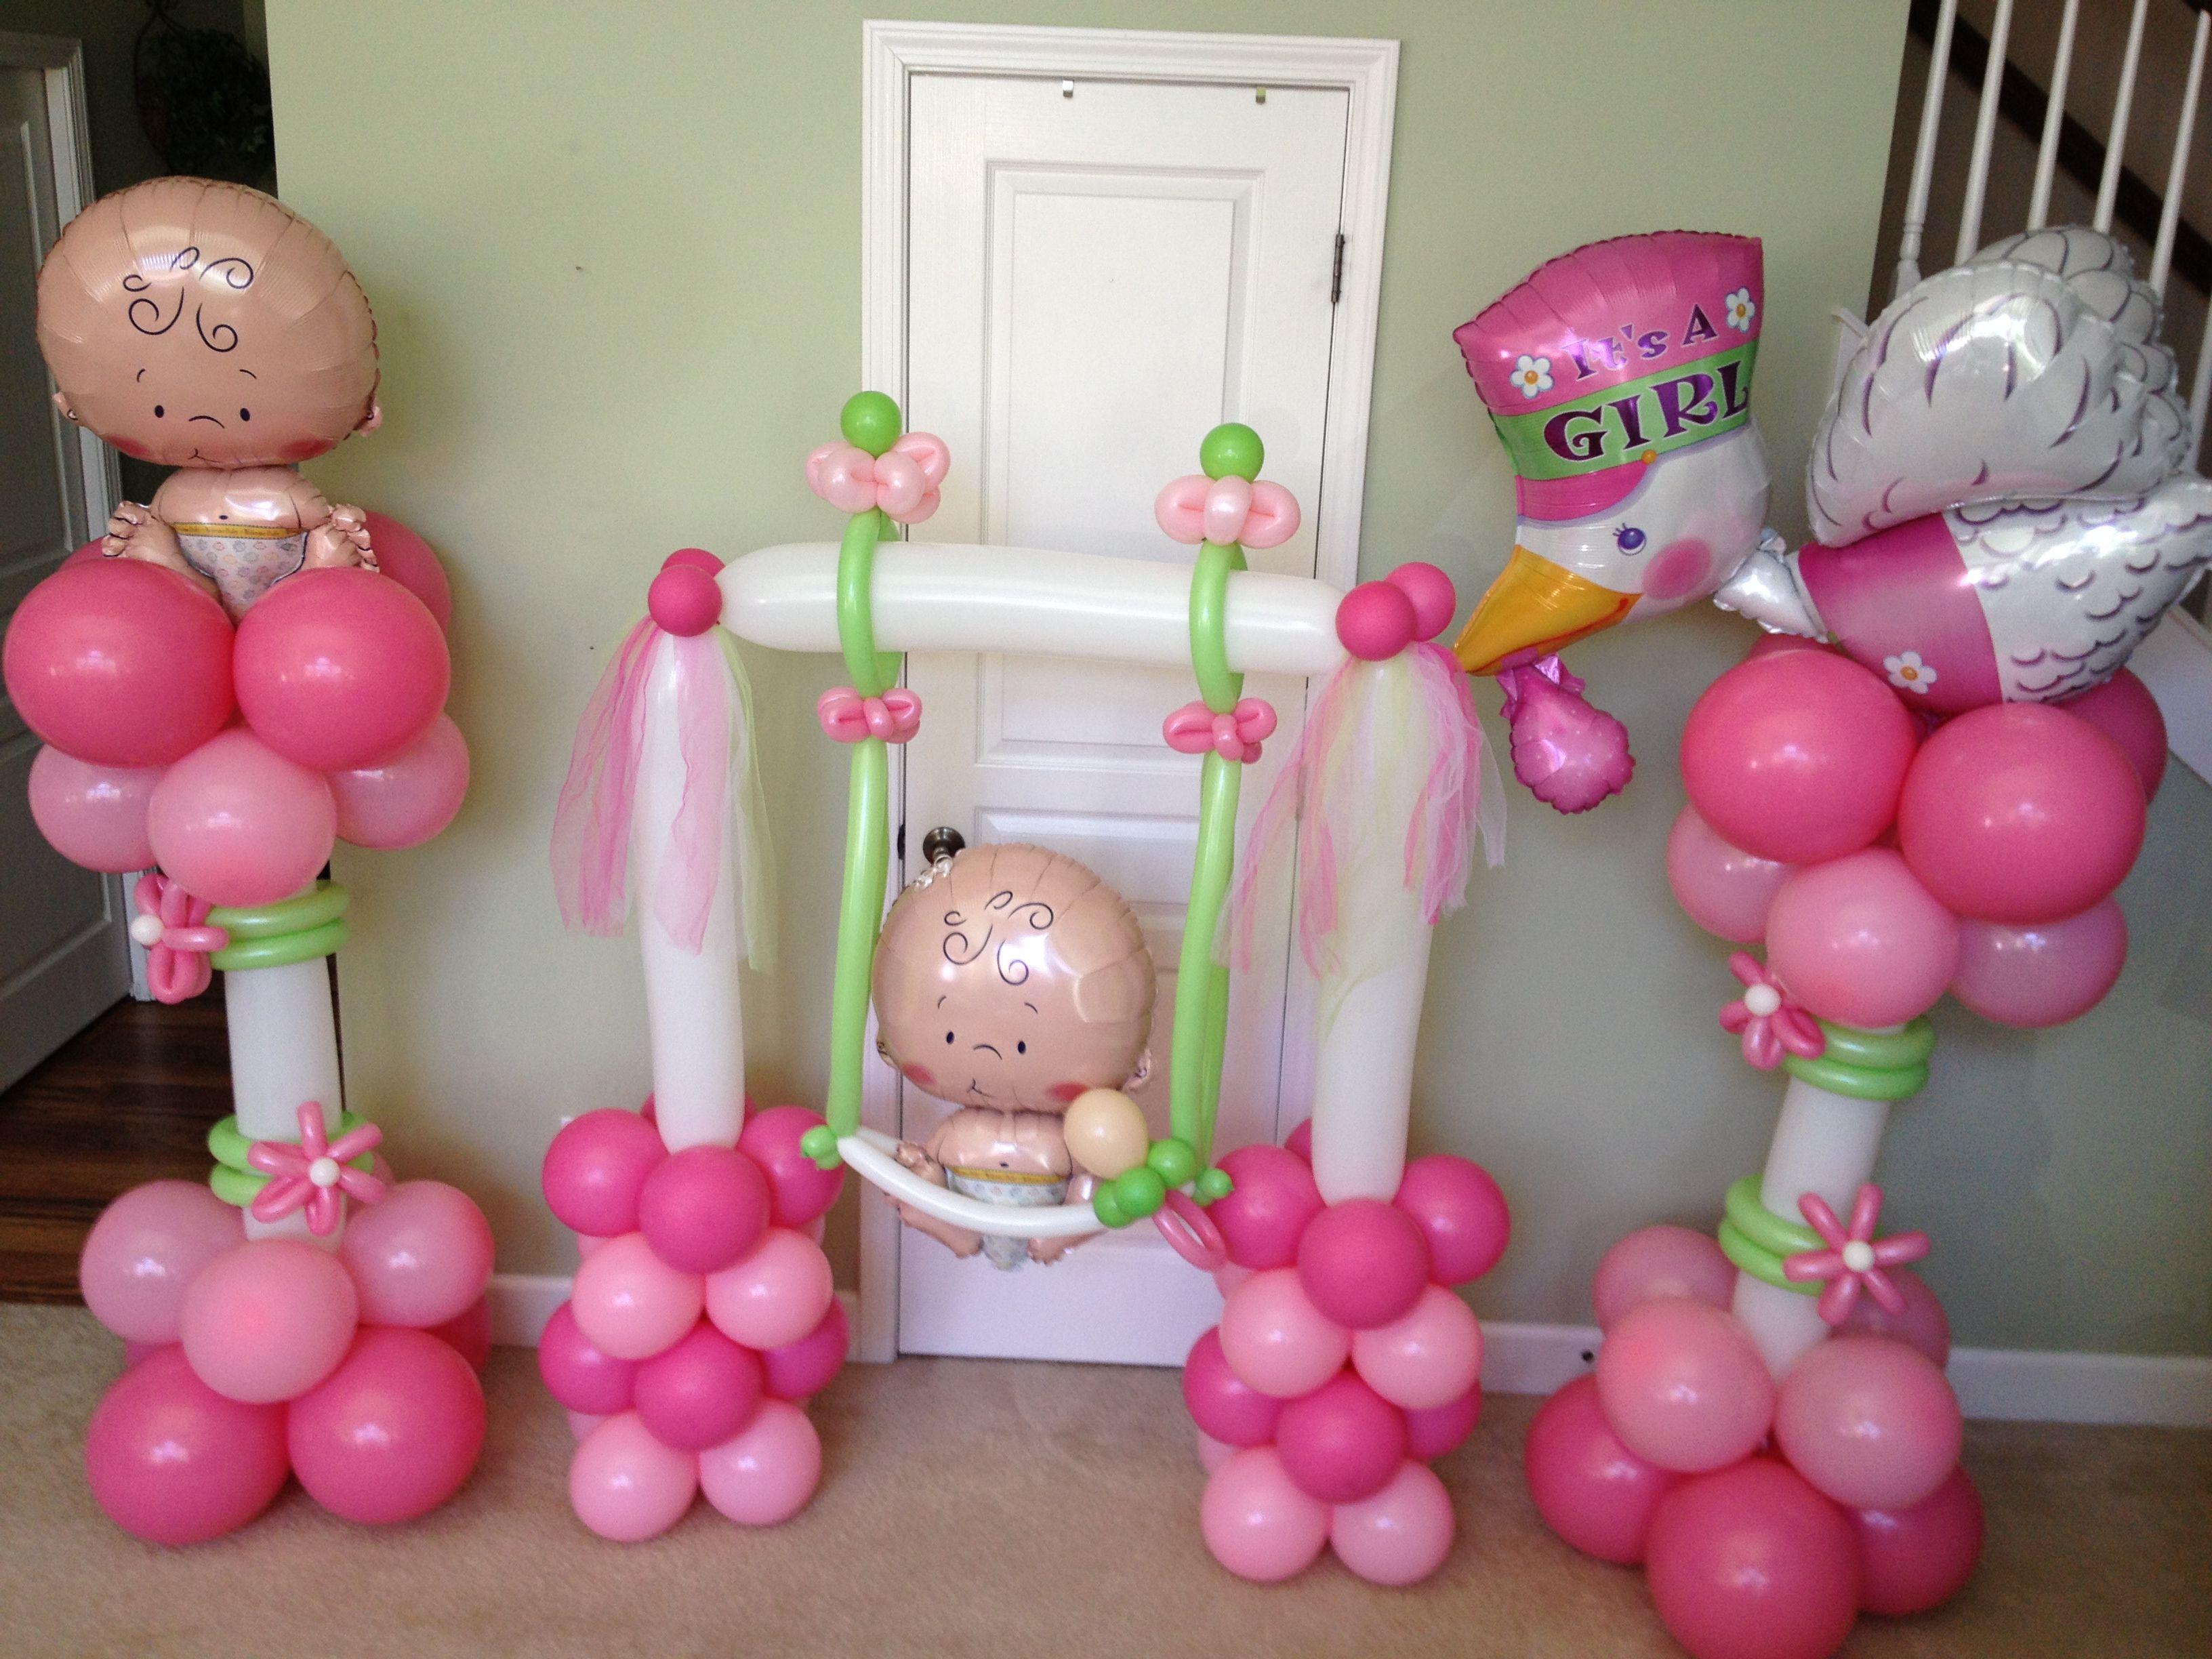 Baby girl balloon decorations baby shower balloons for Baby decoration ideas for shower